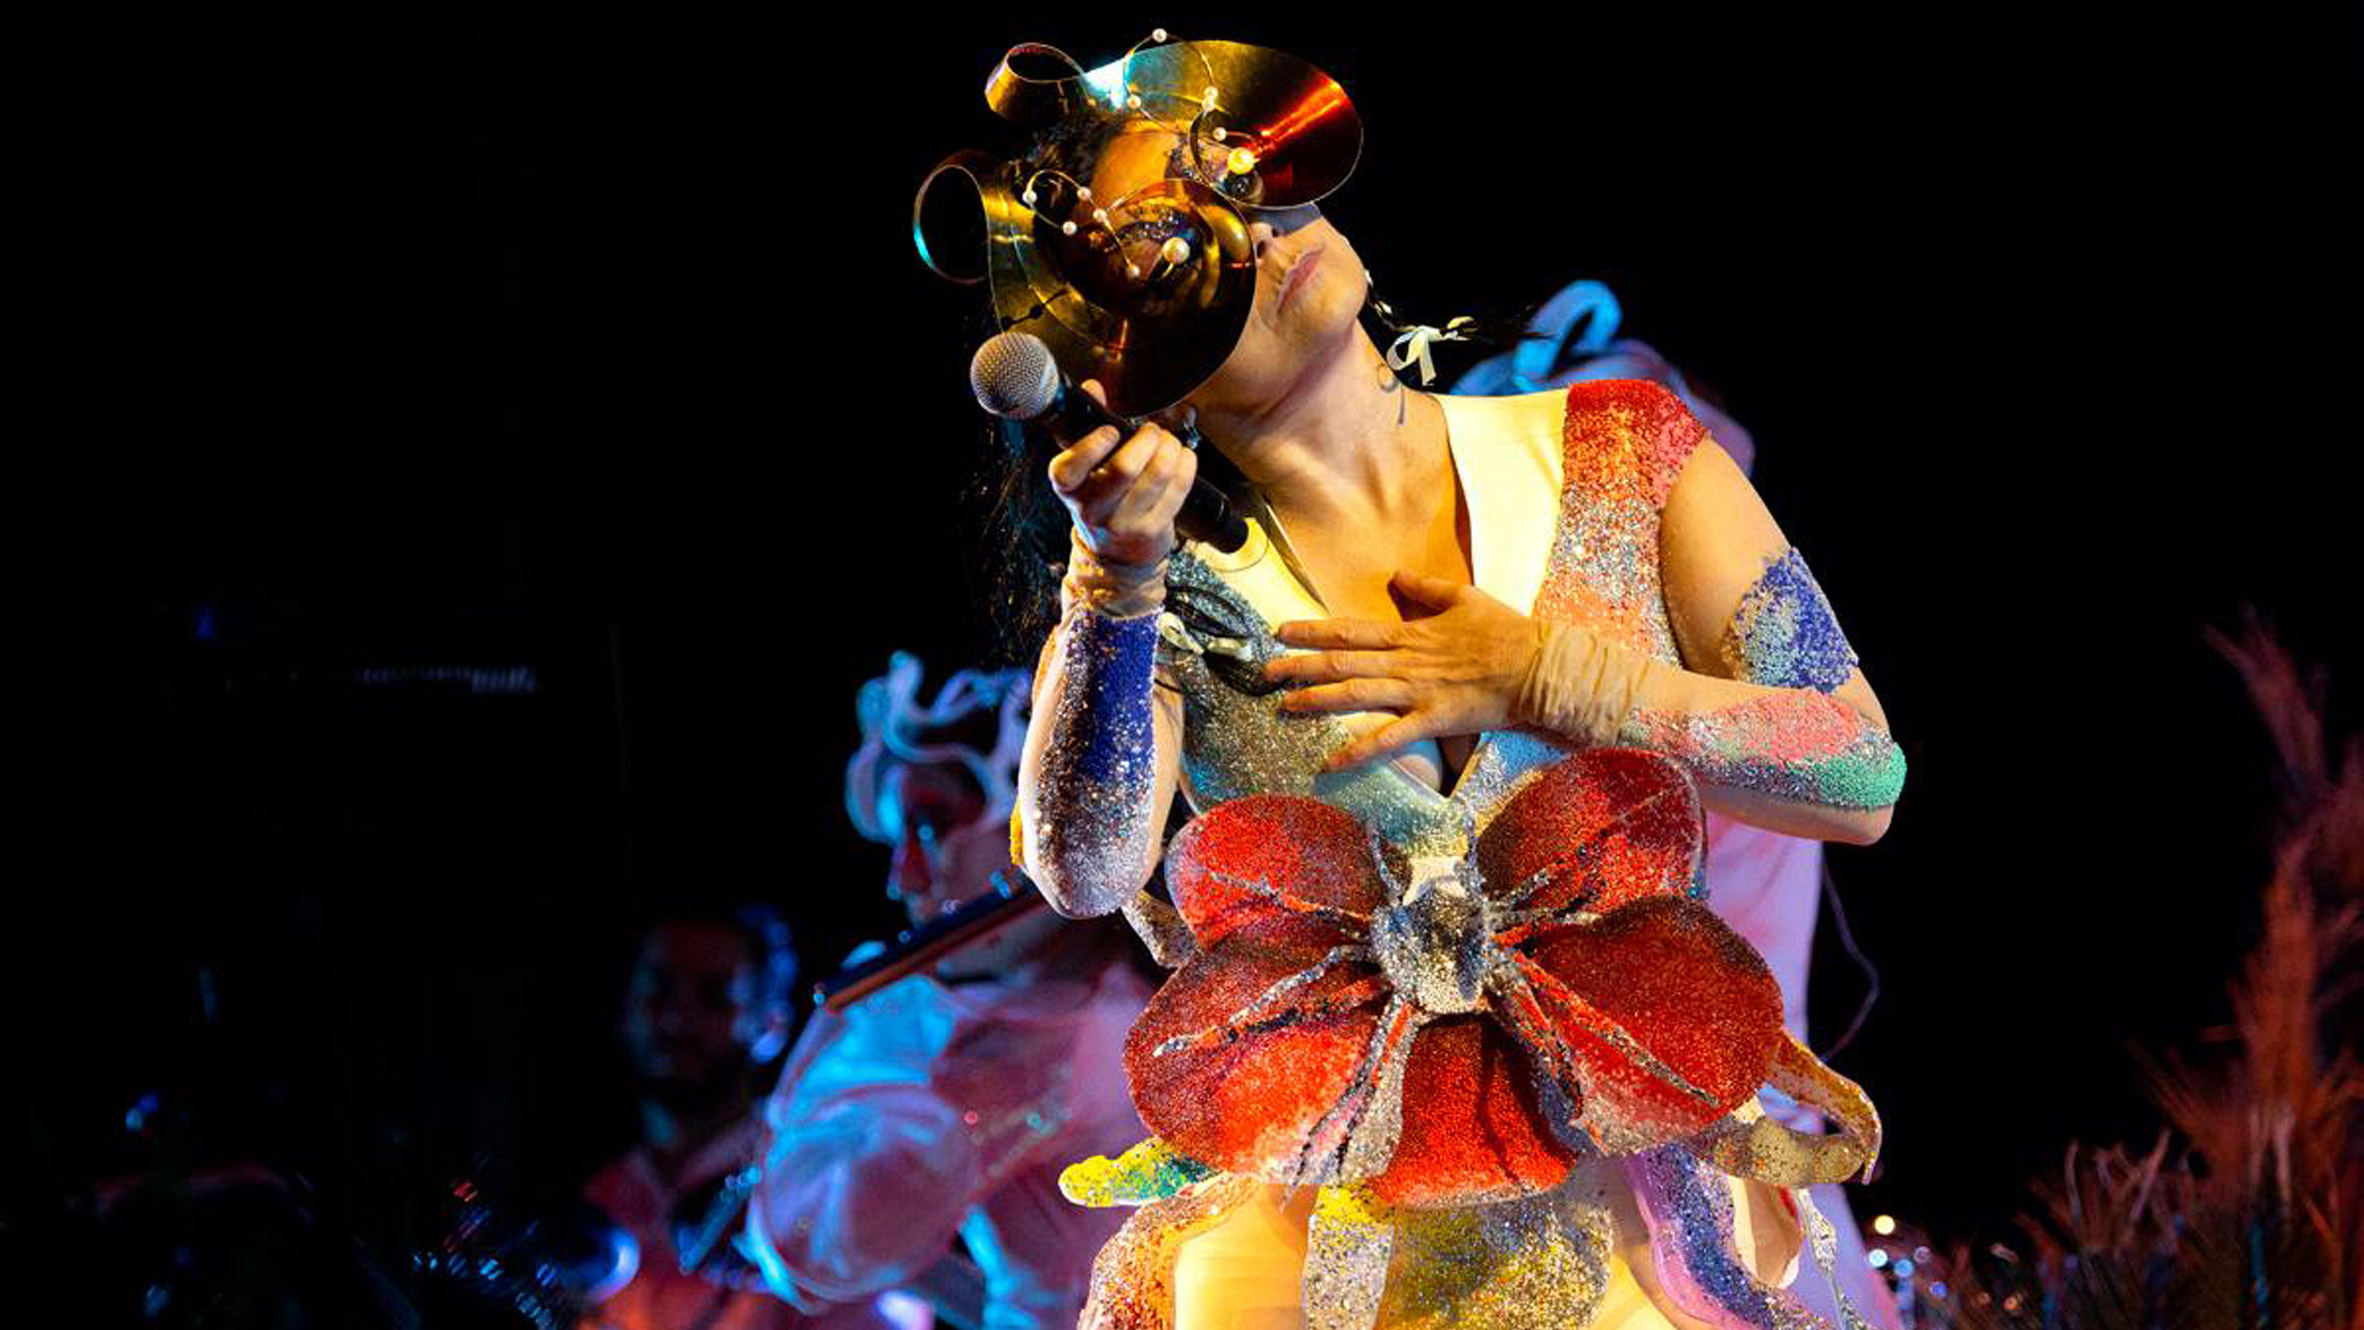 bjork-james-merry-live-masks-utopia-tour-design_dezeen_hero.jpg